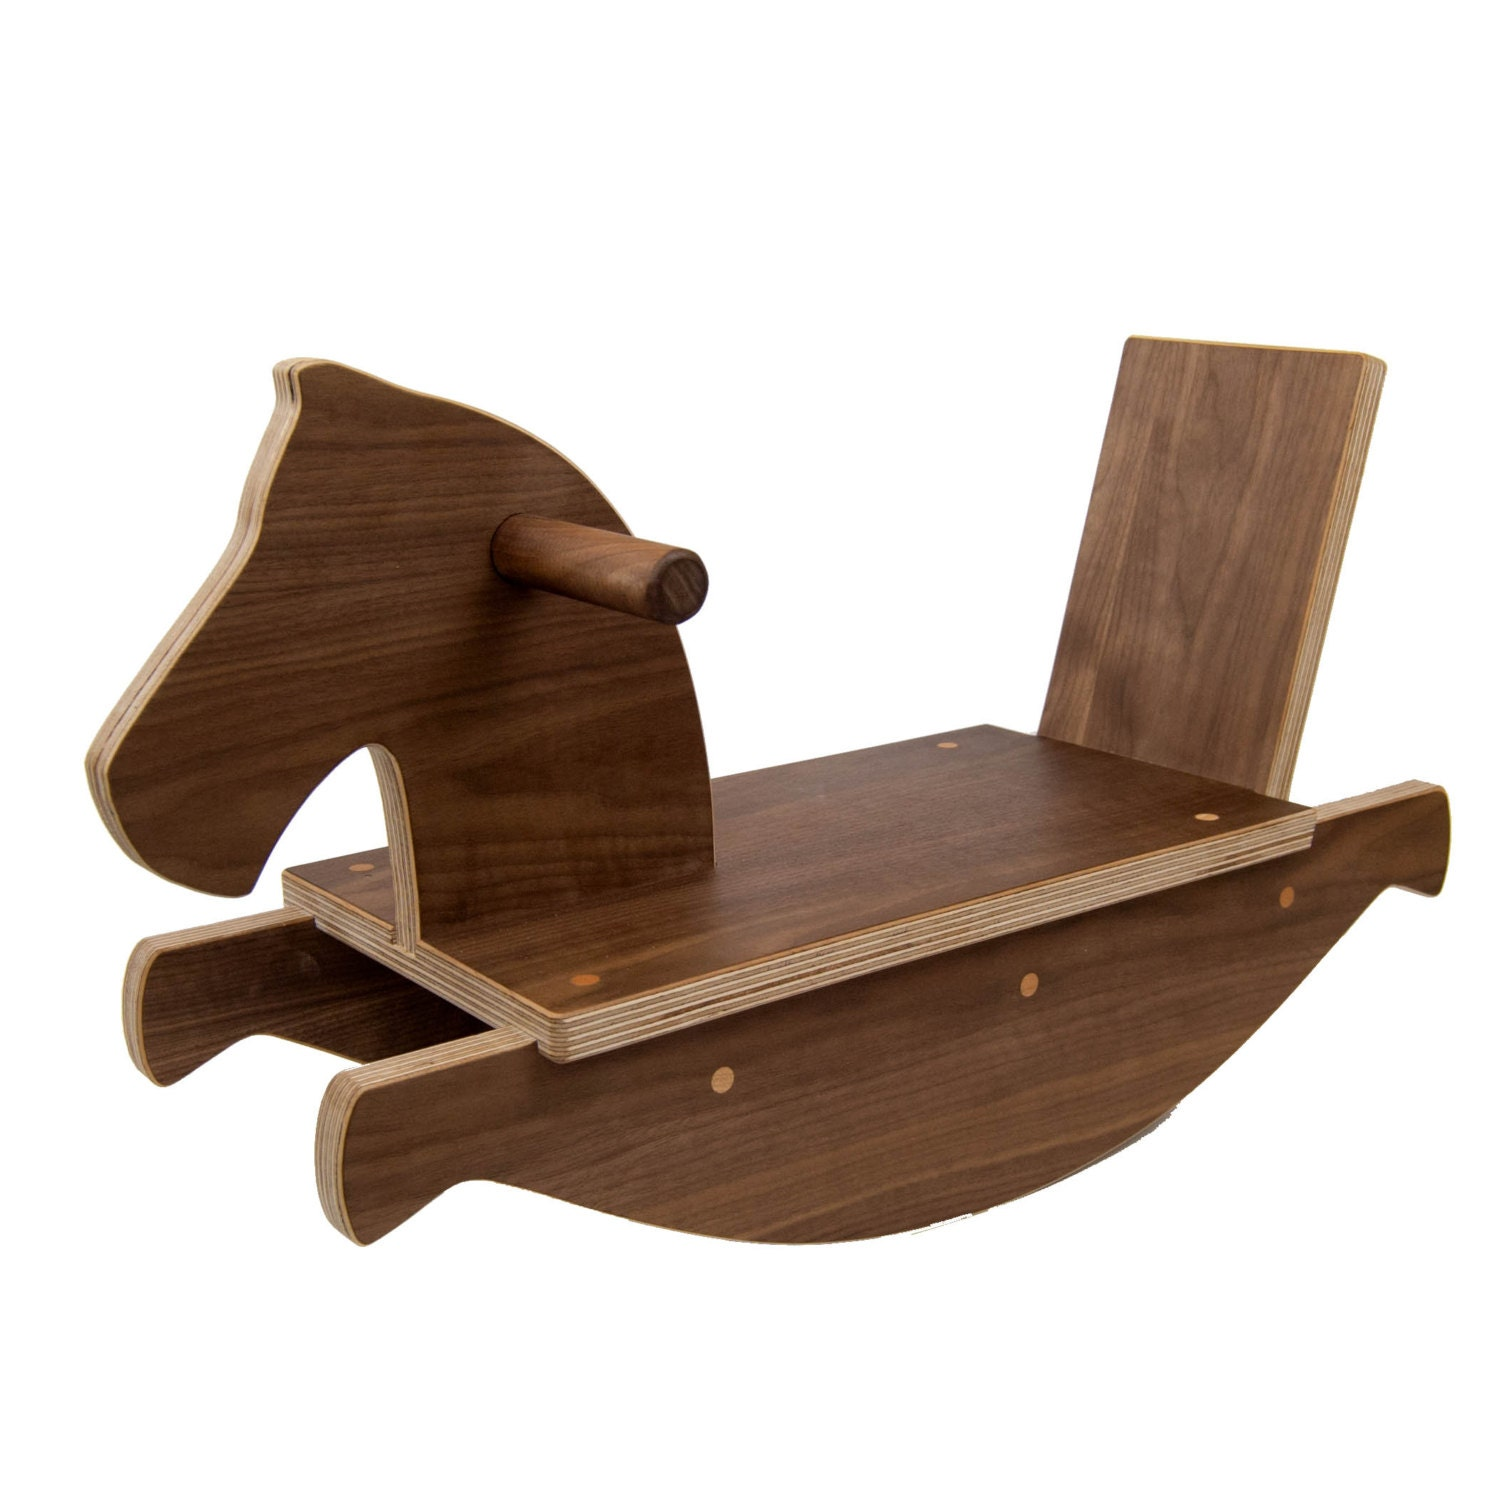 Rocking Horse In Walnut Handmade Wooden Toy Ride On Toy